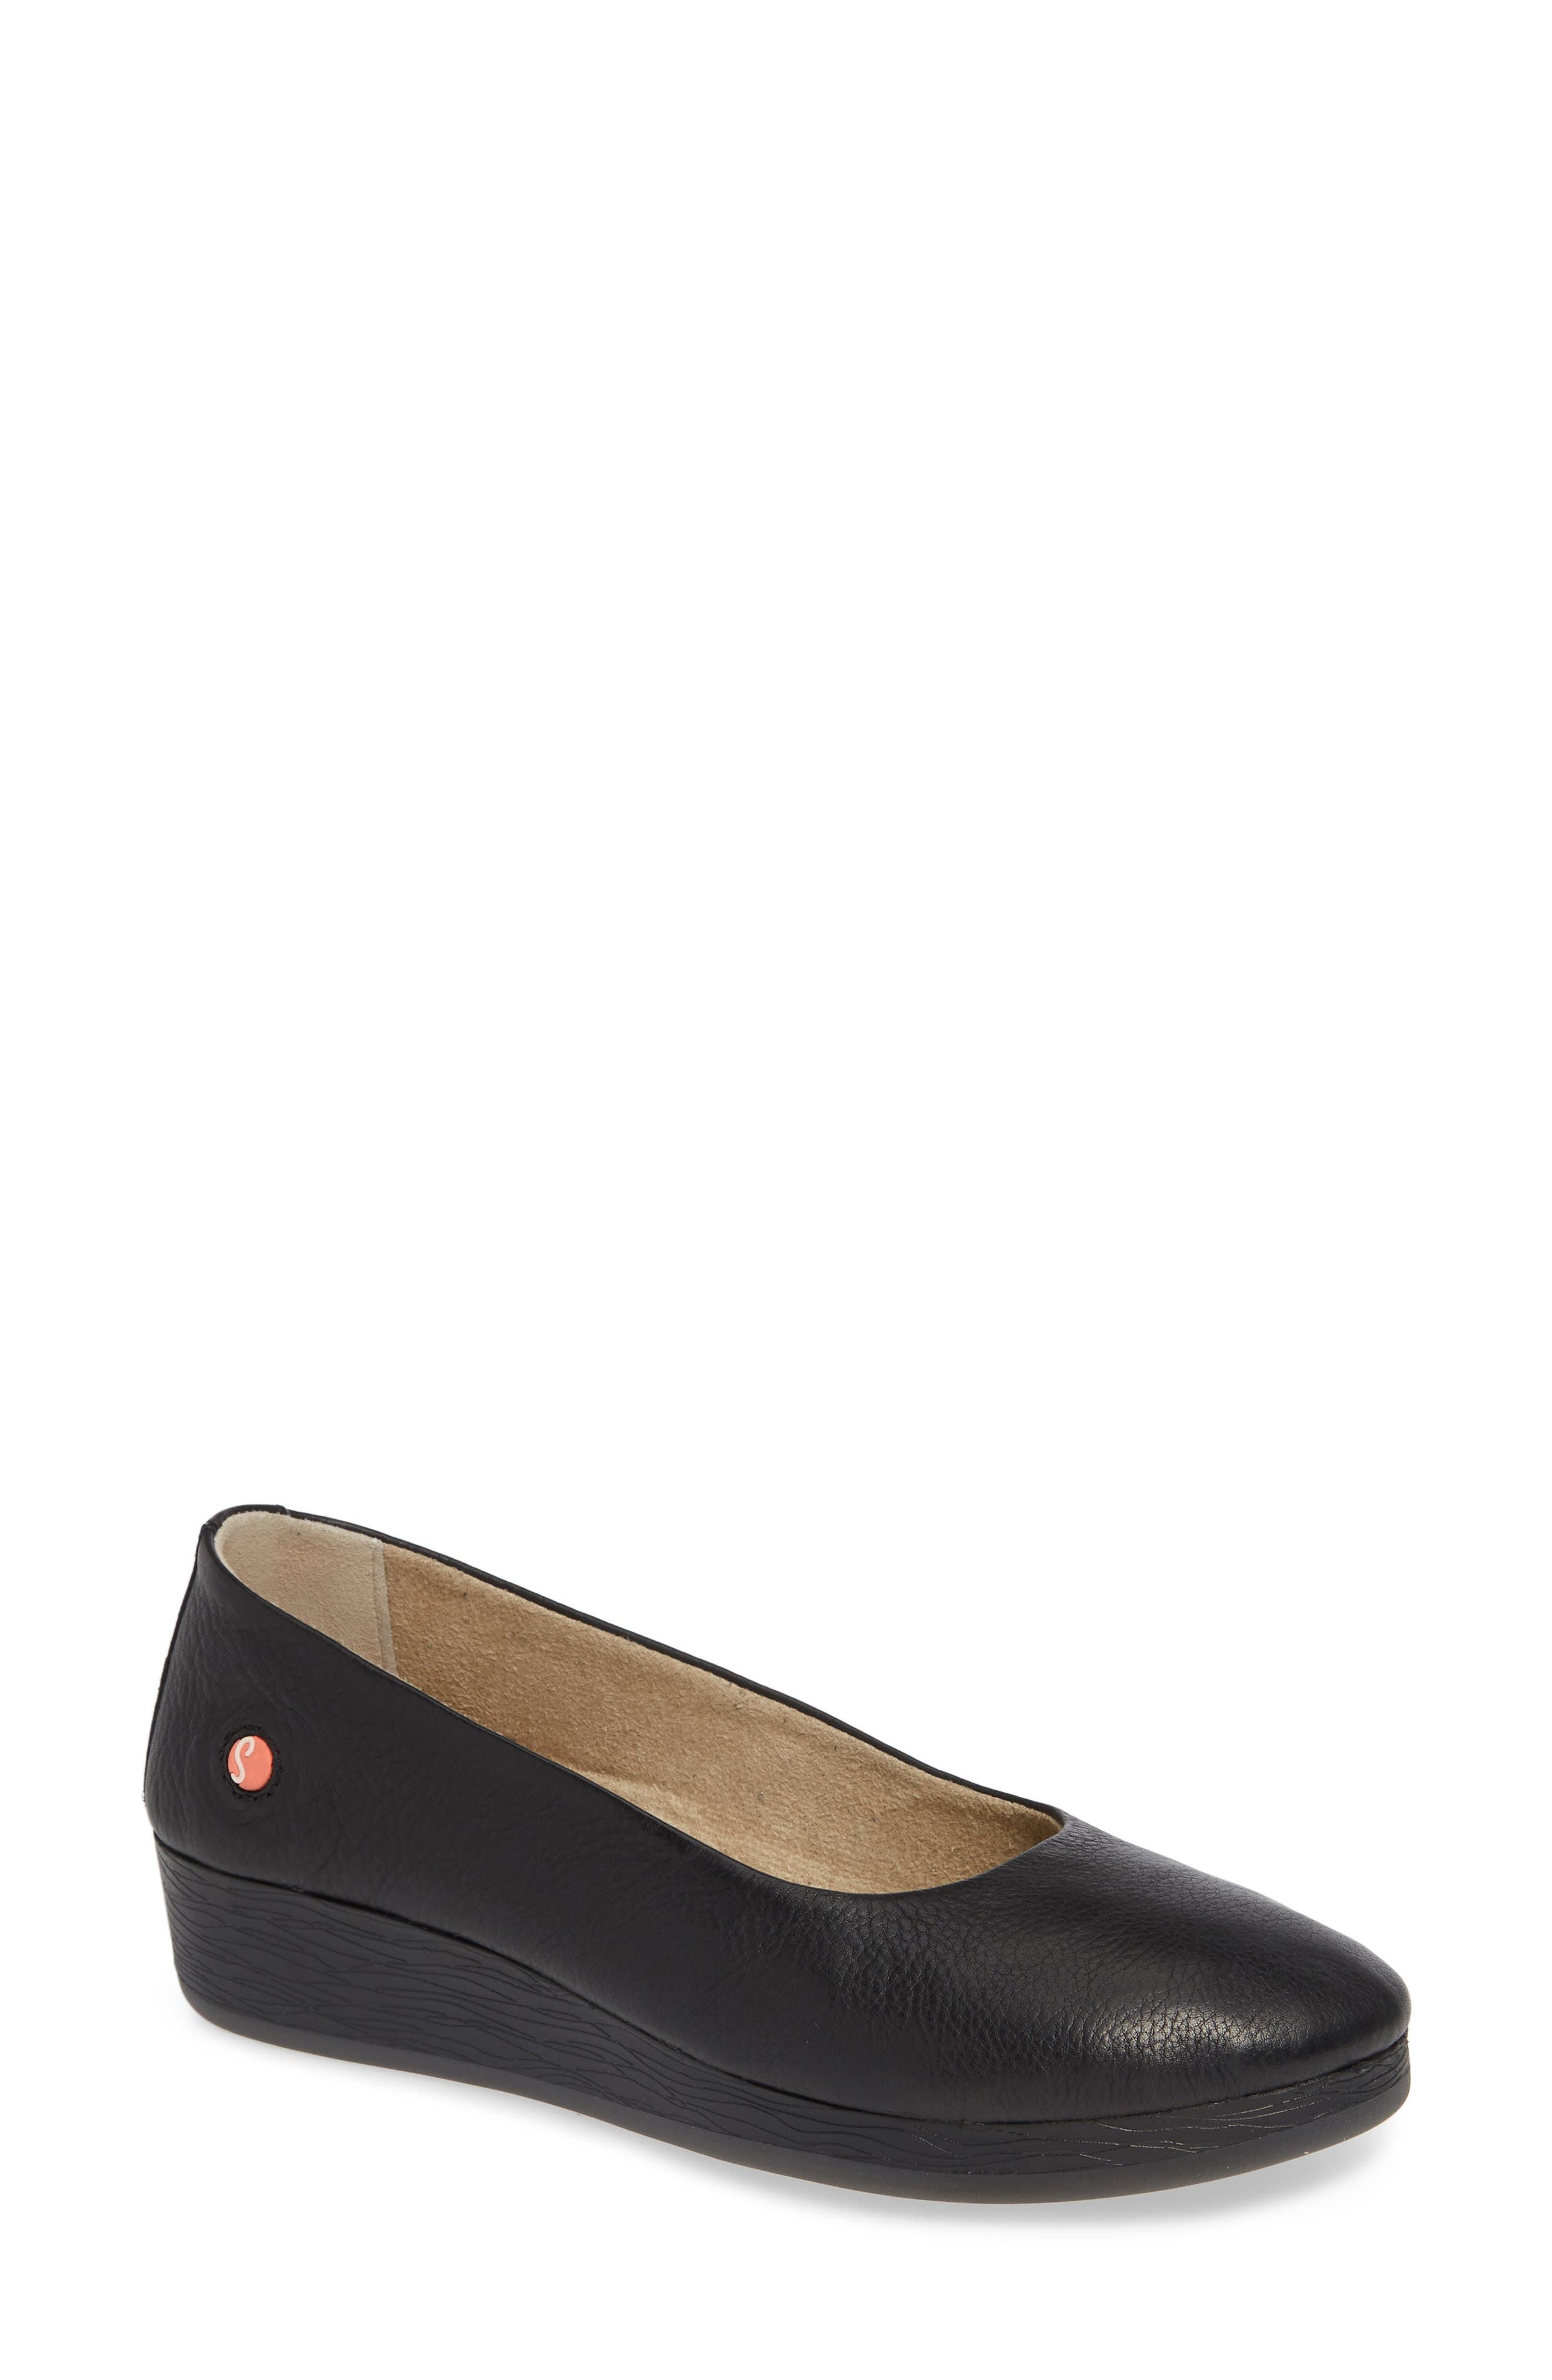 SOFTINOS BY FLY LONDON Asa Soft Flat, Main, color, BLACK SMOOTH LEATHER